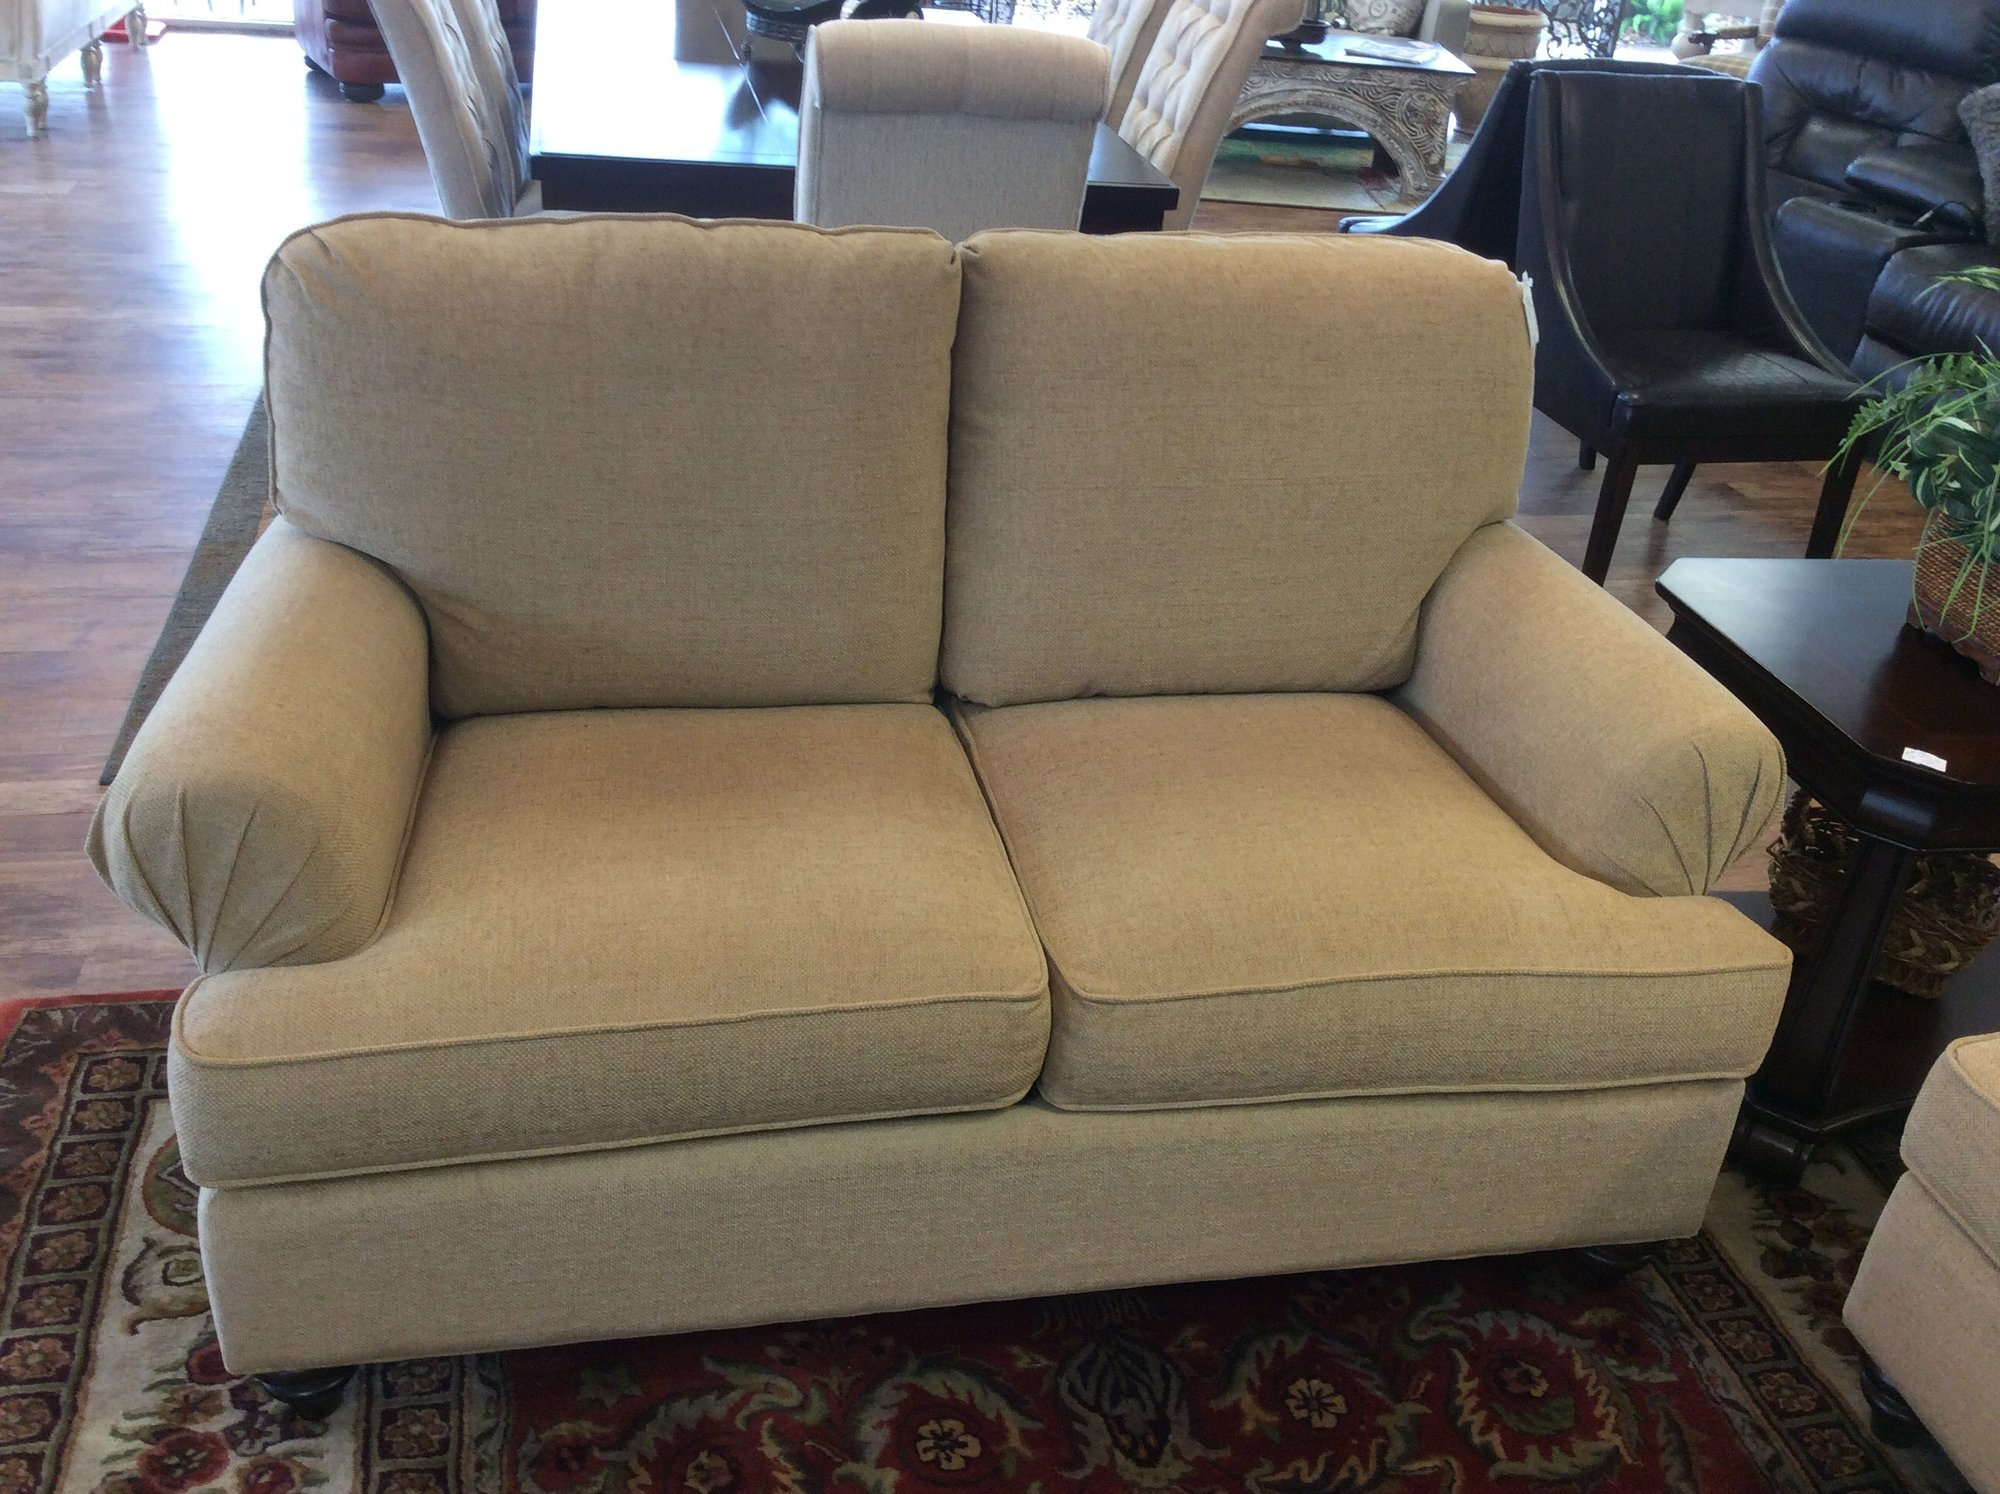 This is a gorgeous BASSETT loveseat. It came in with a matching sofa, that is available for purchase seperately, as well. The wheat colored upholstery is in great shape, and all of the cushions are removable for easy cleaning.